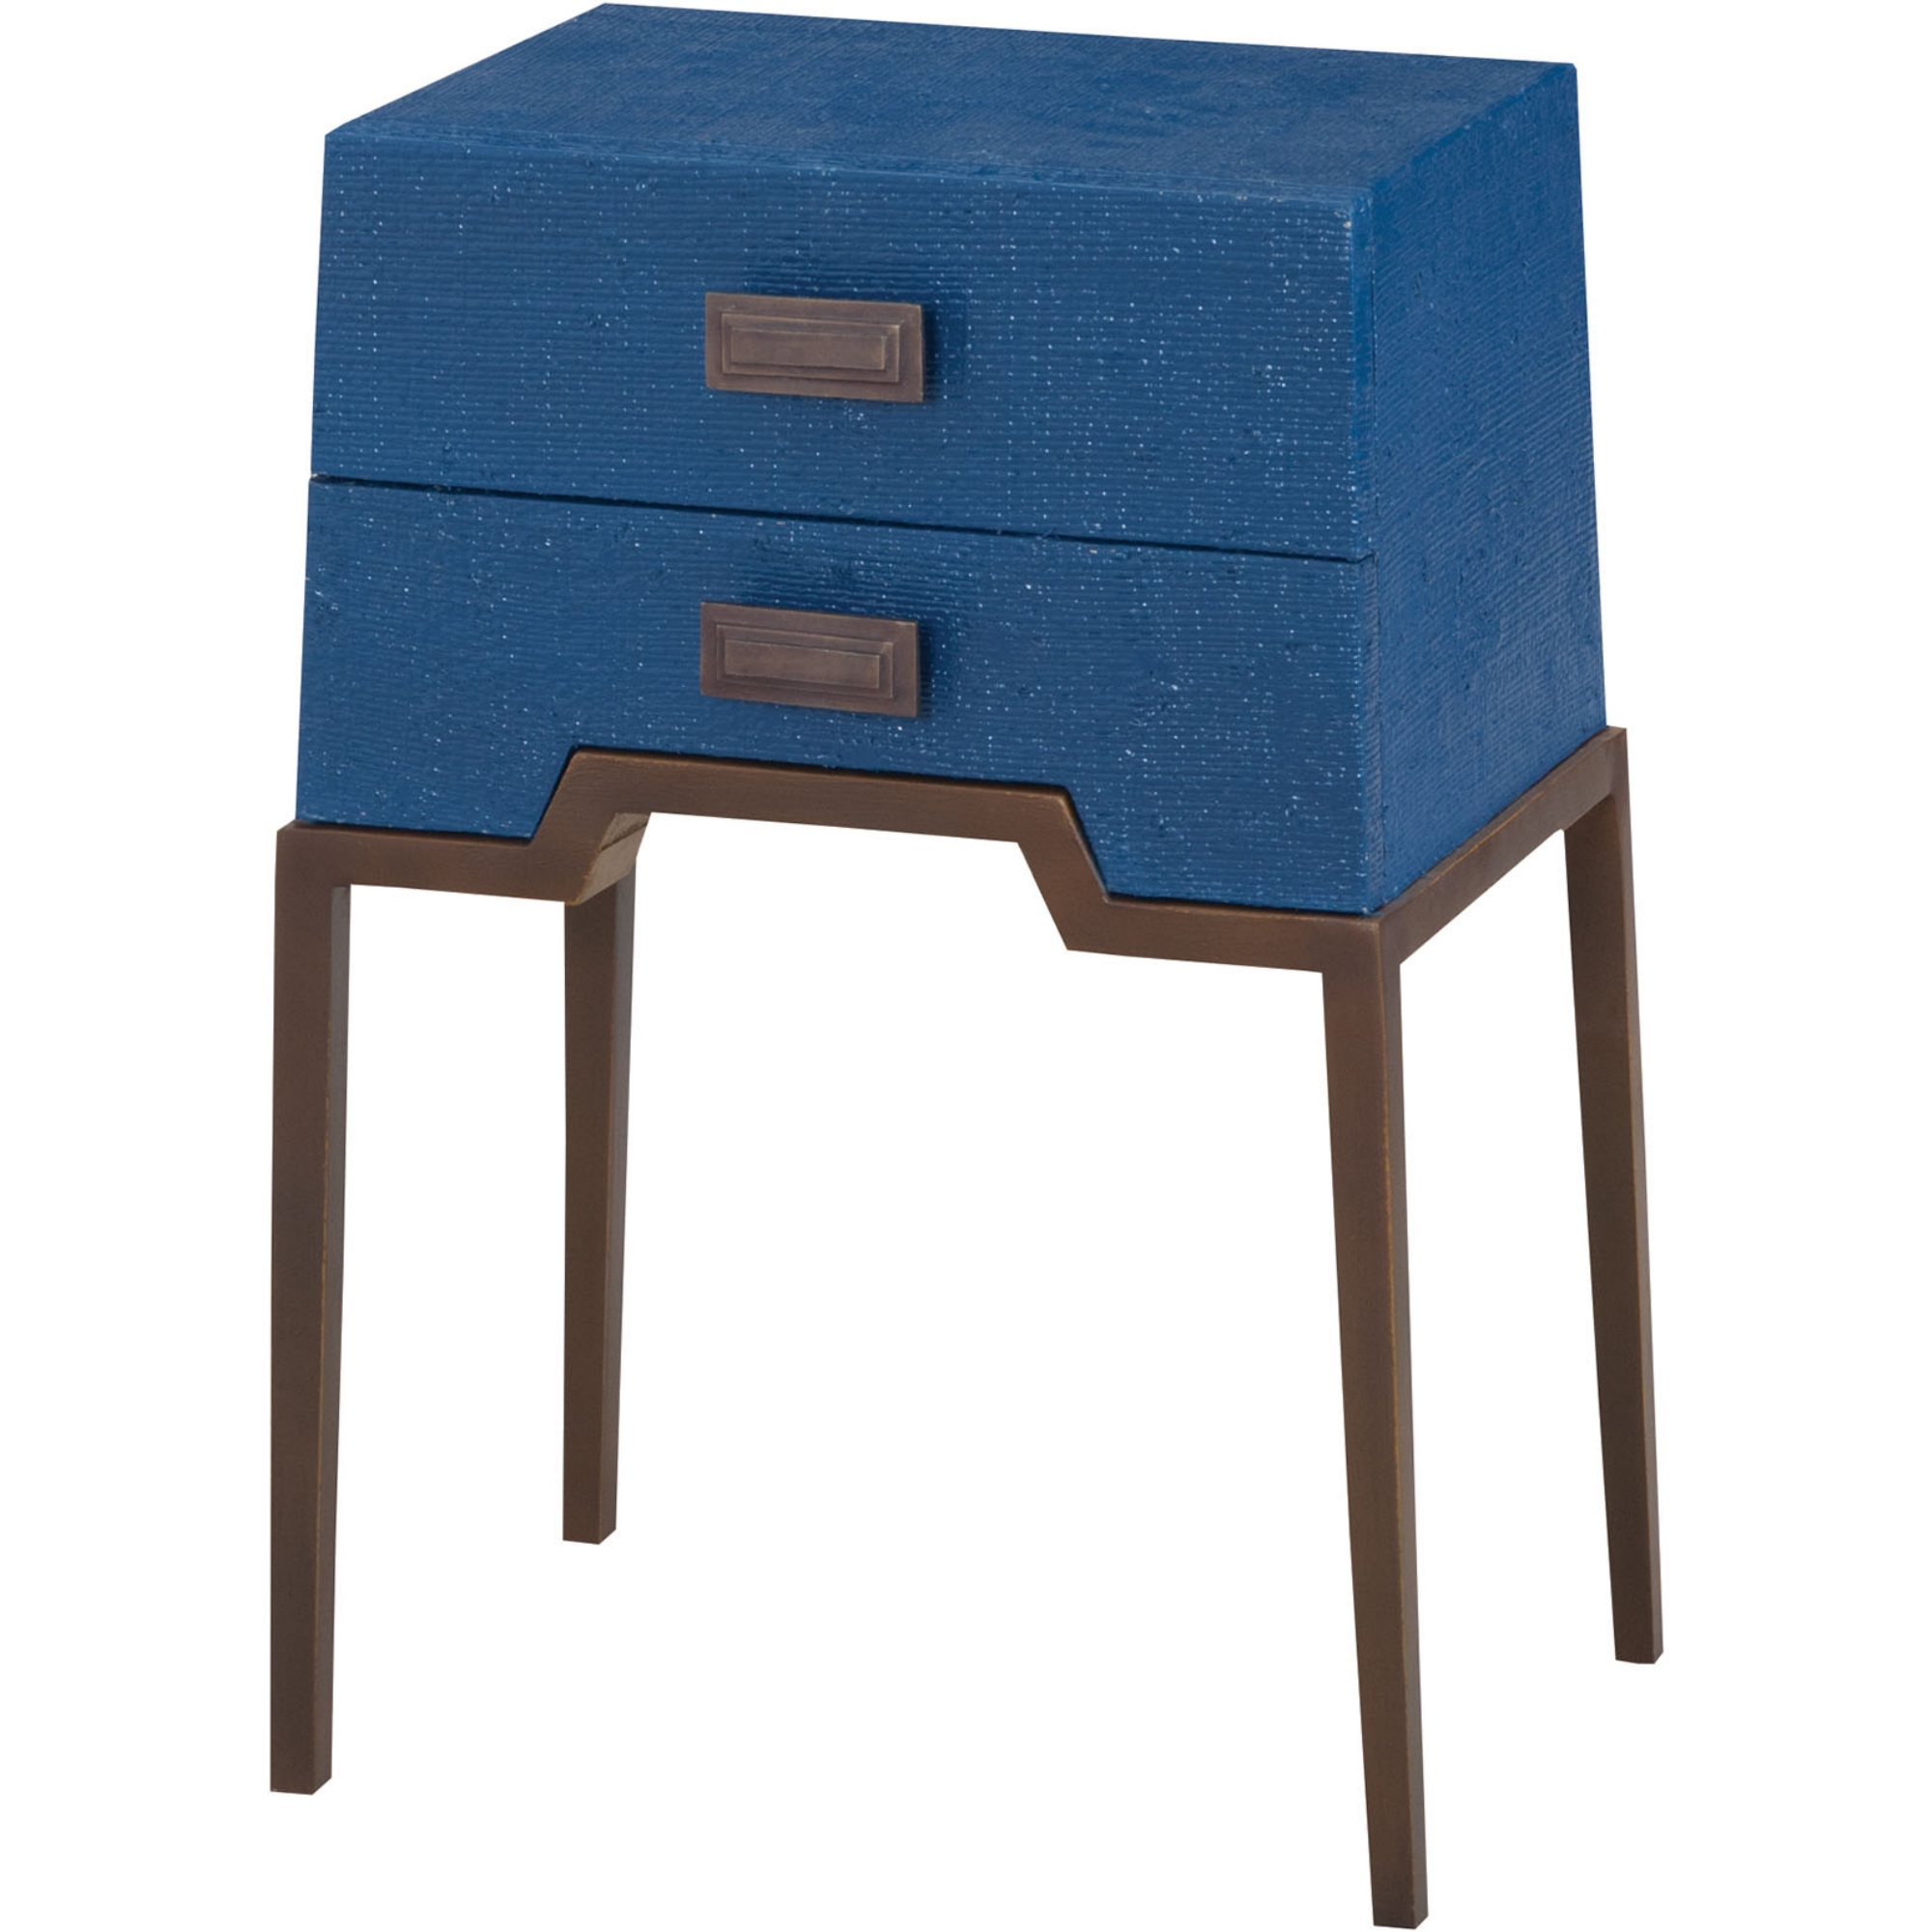 sterling industries ziggy blue accent table natural navy raffia aged brass tone big sun umbrella cocktail sets small space bedroom furniture bayside furnishings cabinet cool